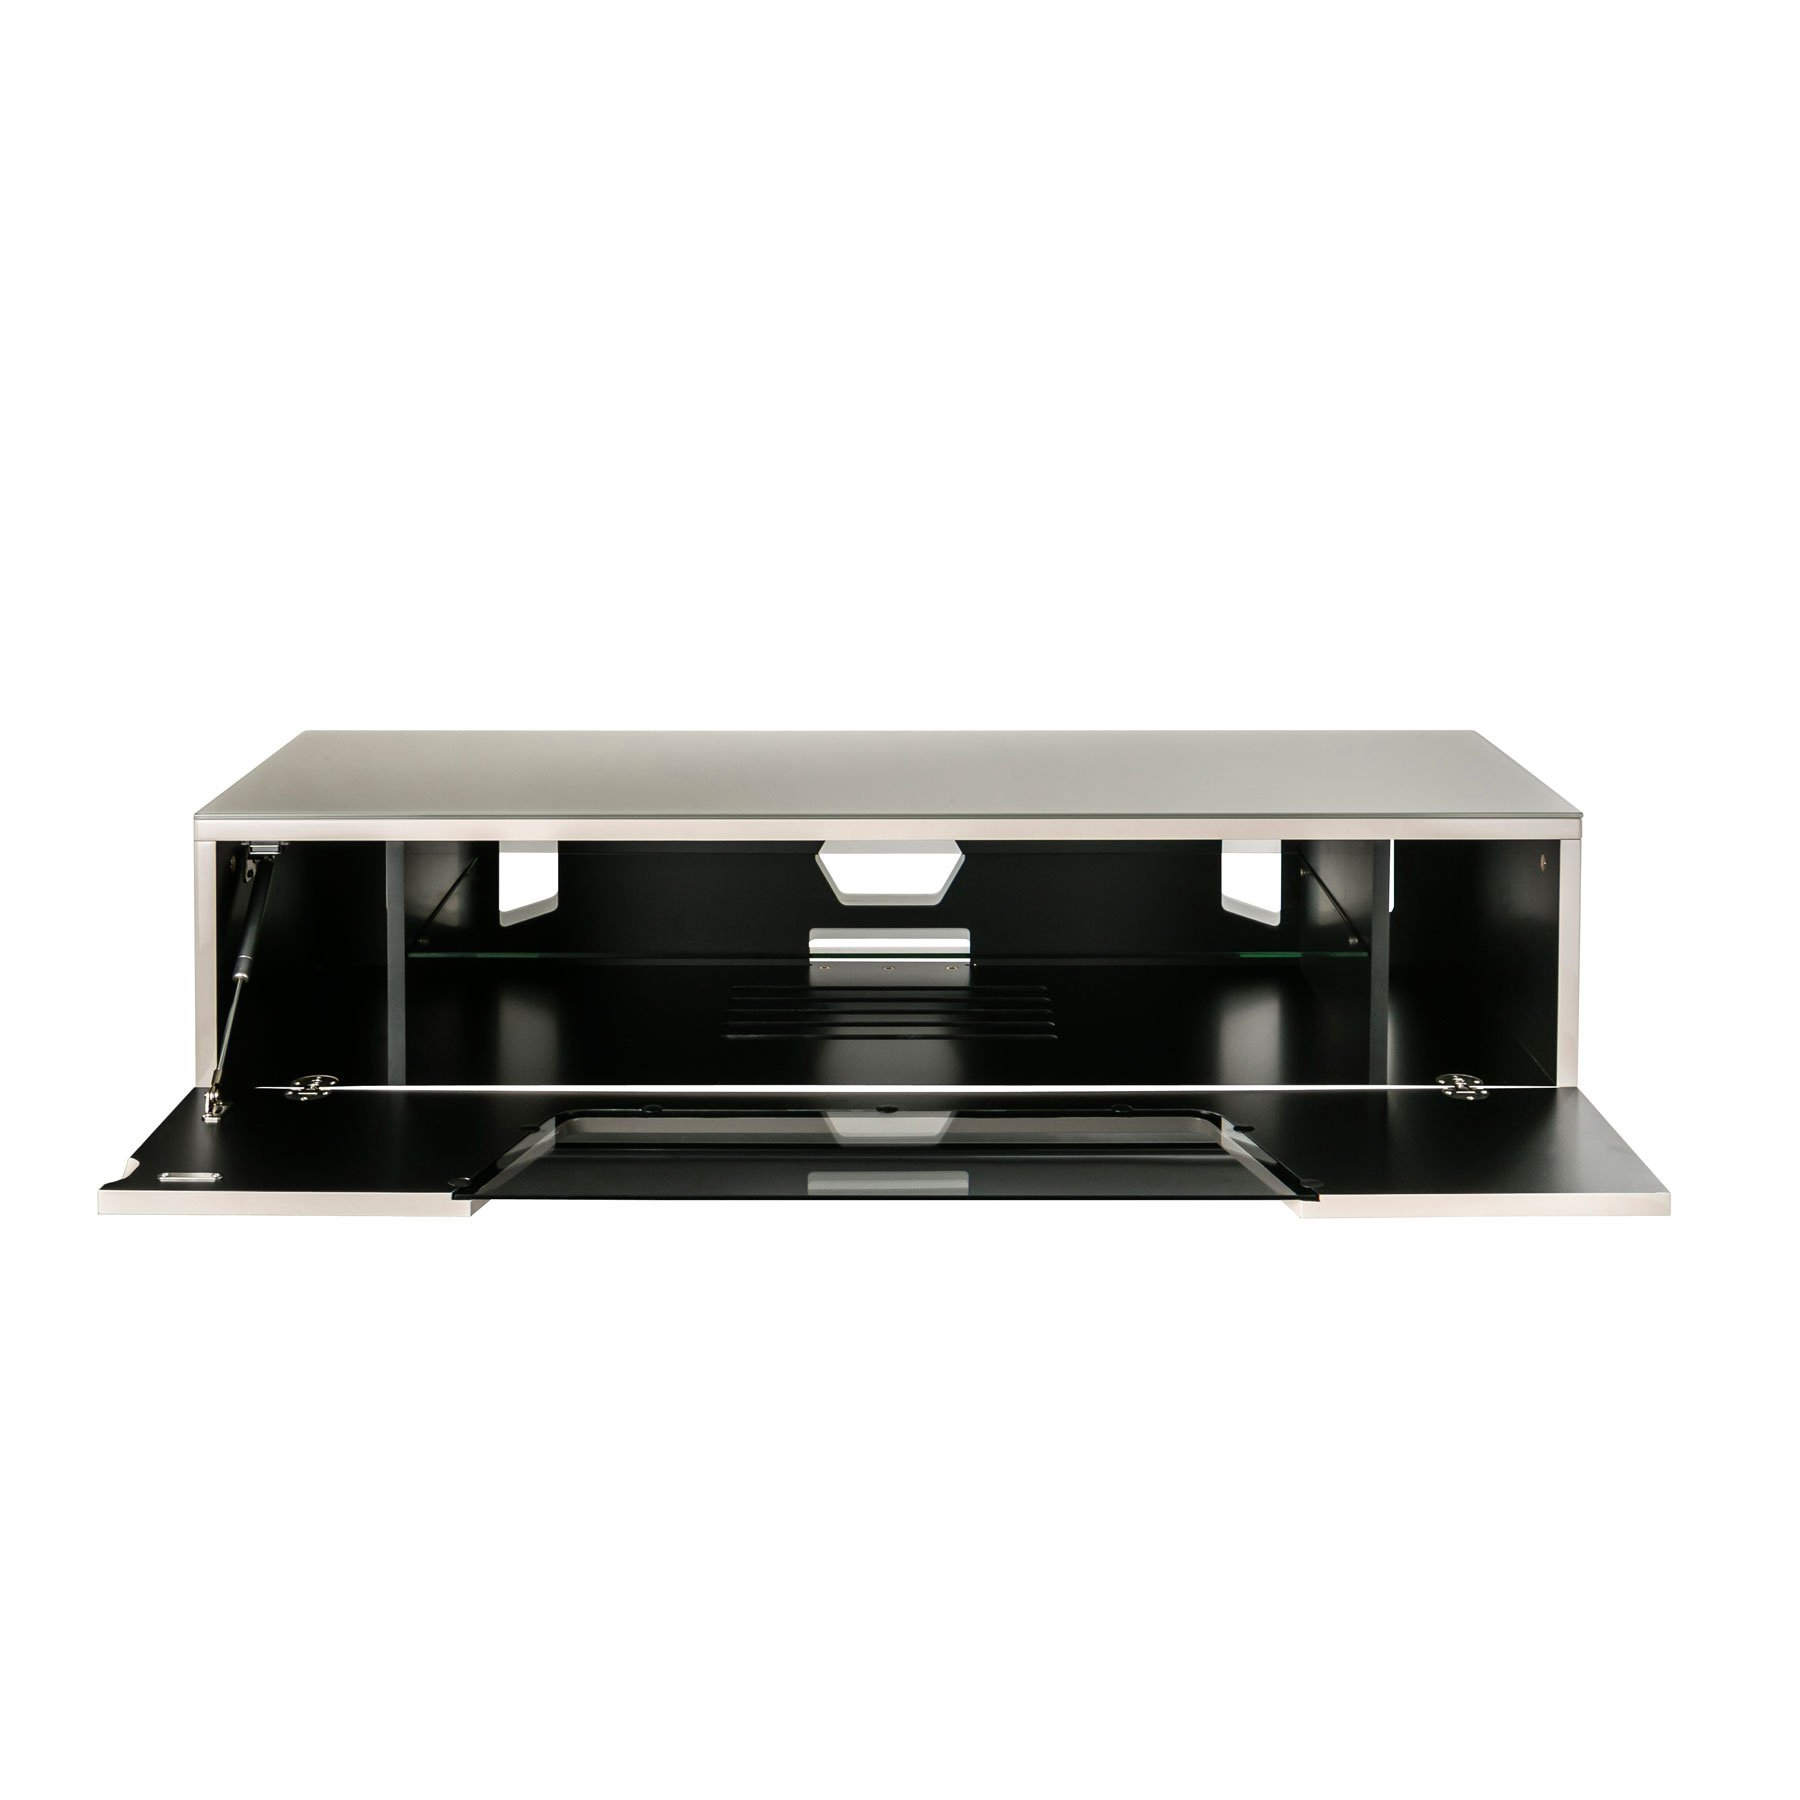 """Most Recent Alphason Chromium 2 120cm Ivory Tv Stand For Up To 60"""" Tvs Regarding Chromium Tv Stands (View 15 of 25)"""